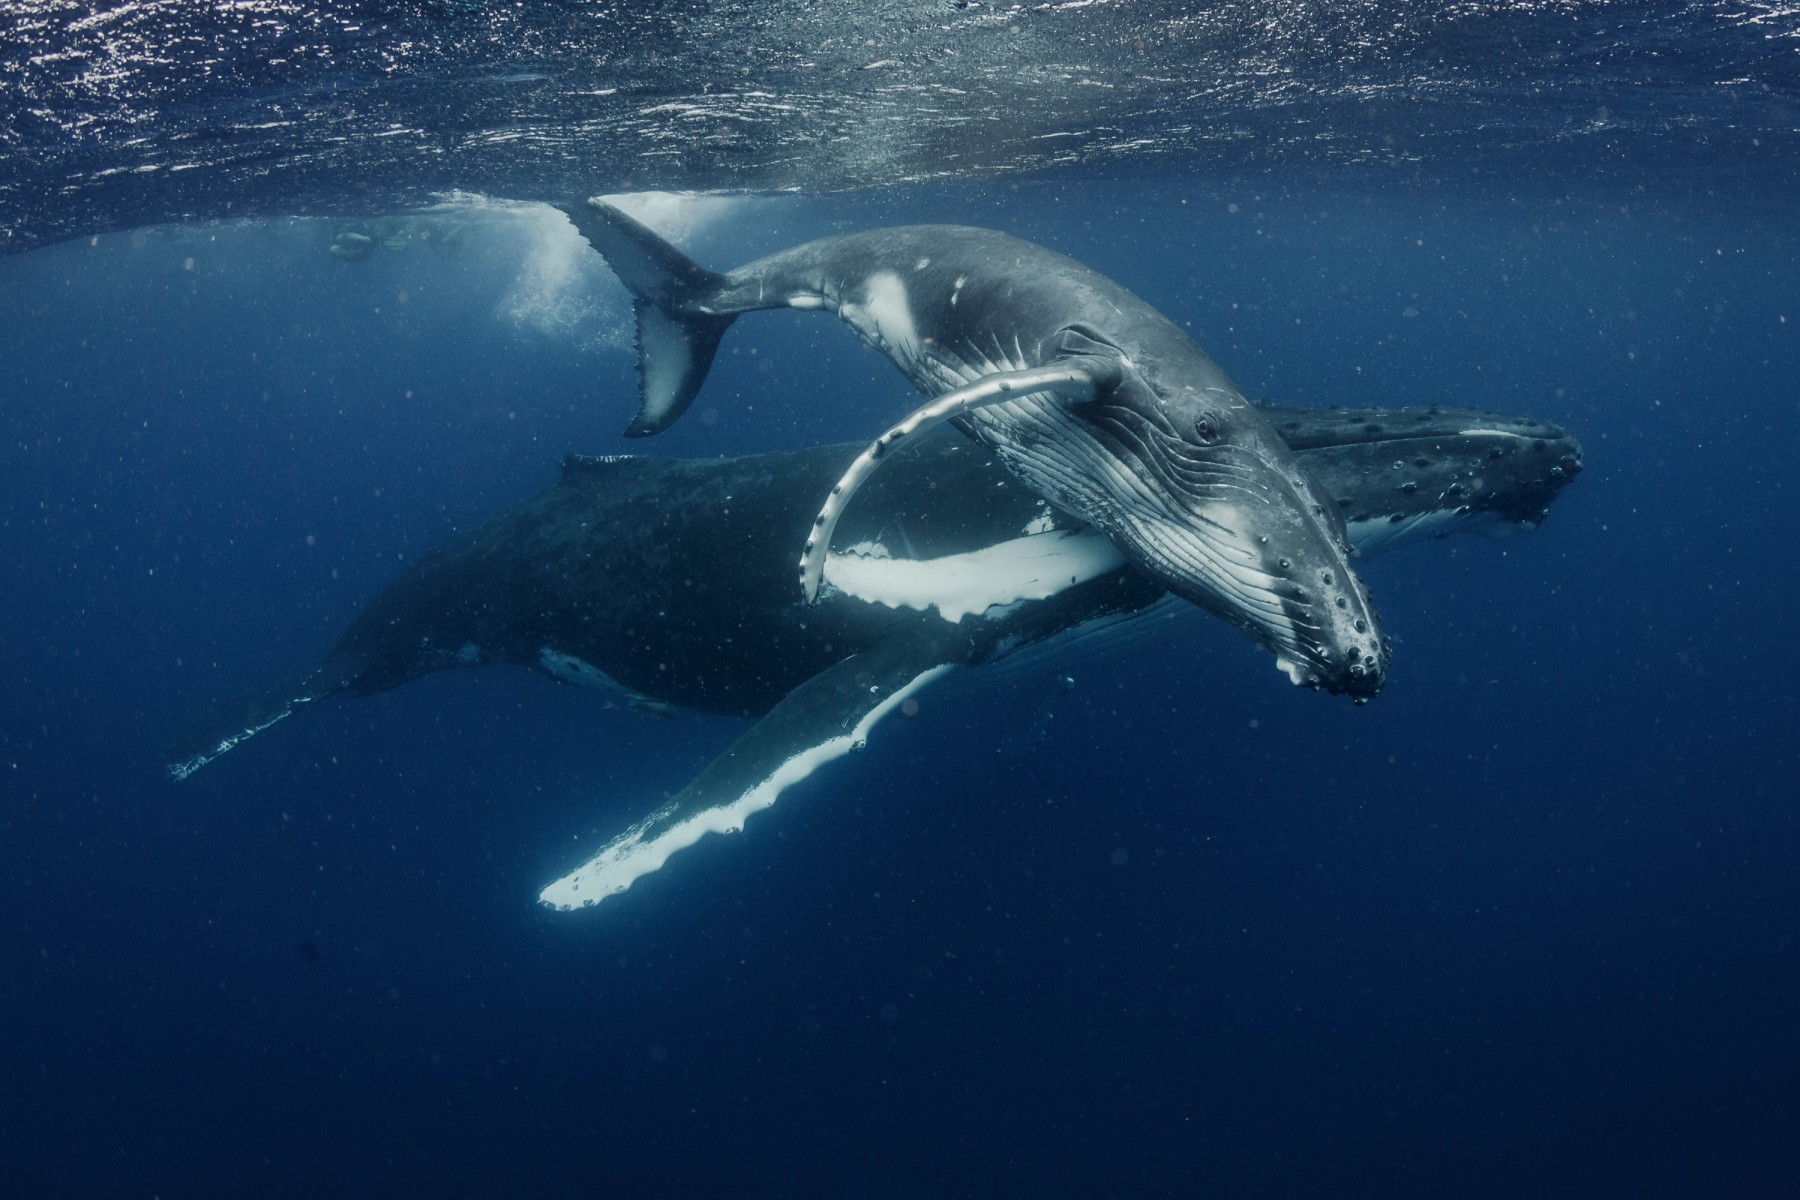 Tonga-Whale-Swim-Credit-Grant-Thomas-Photography